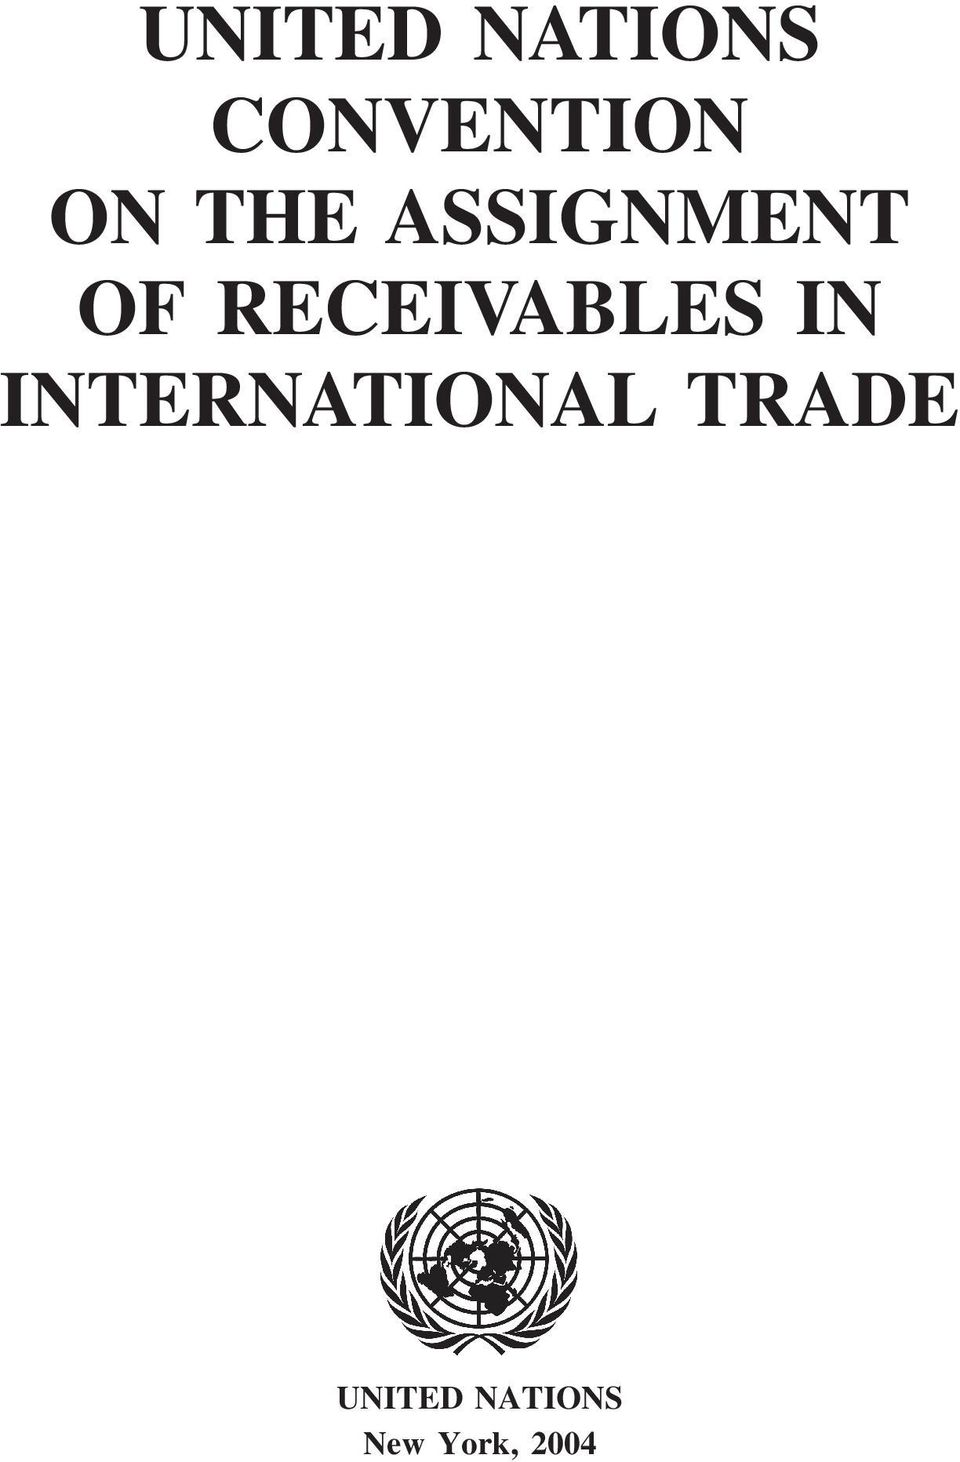 RECEIVABLES IN